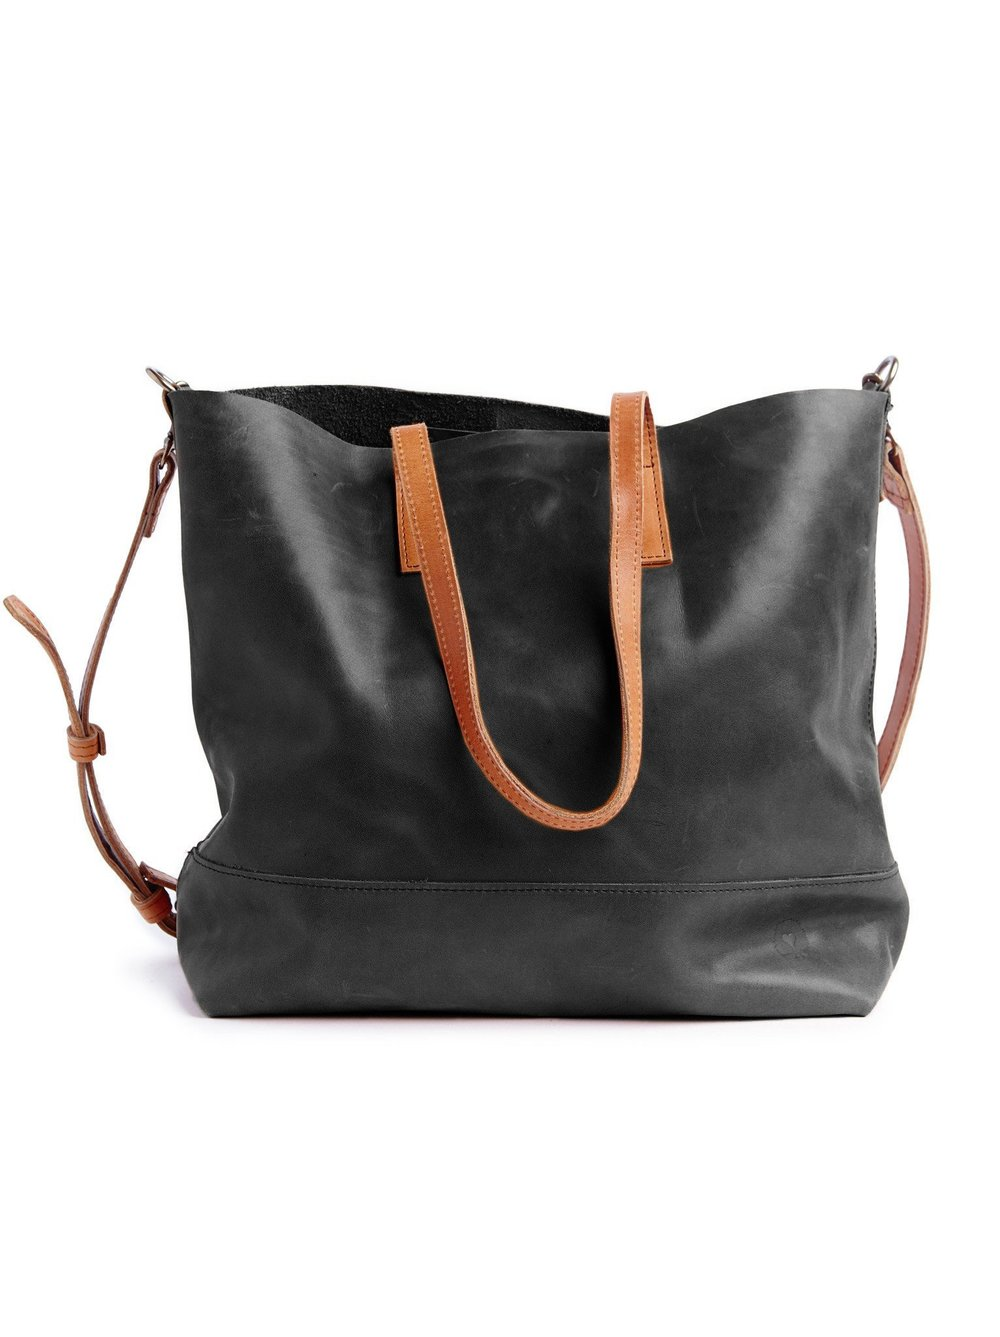 Fashionable Abera Tote  | $178